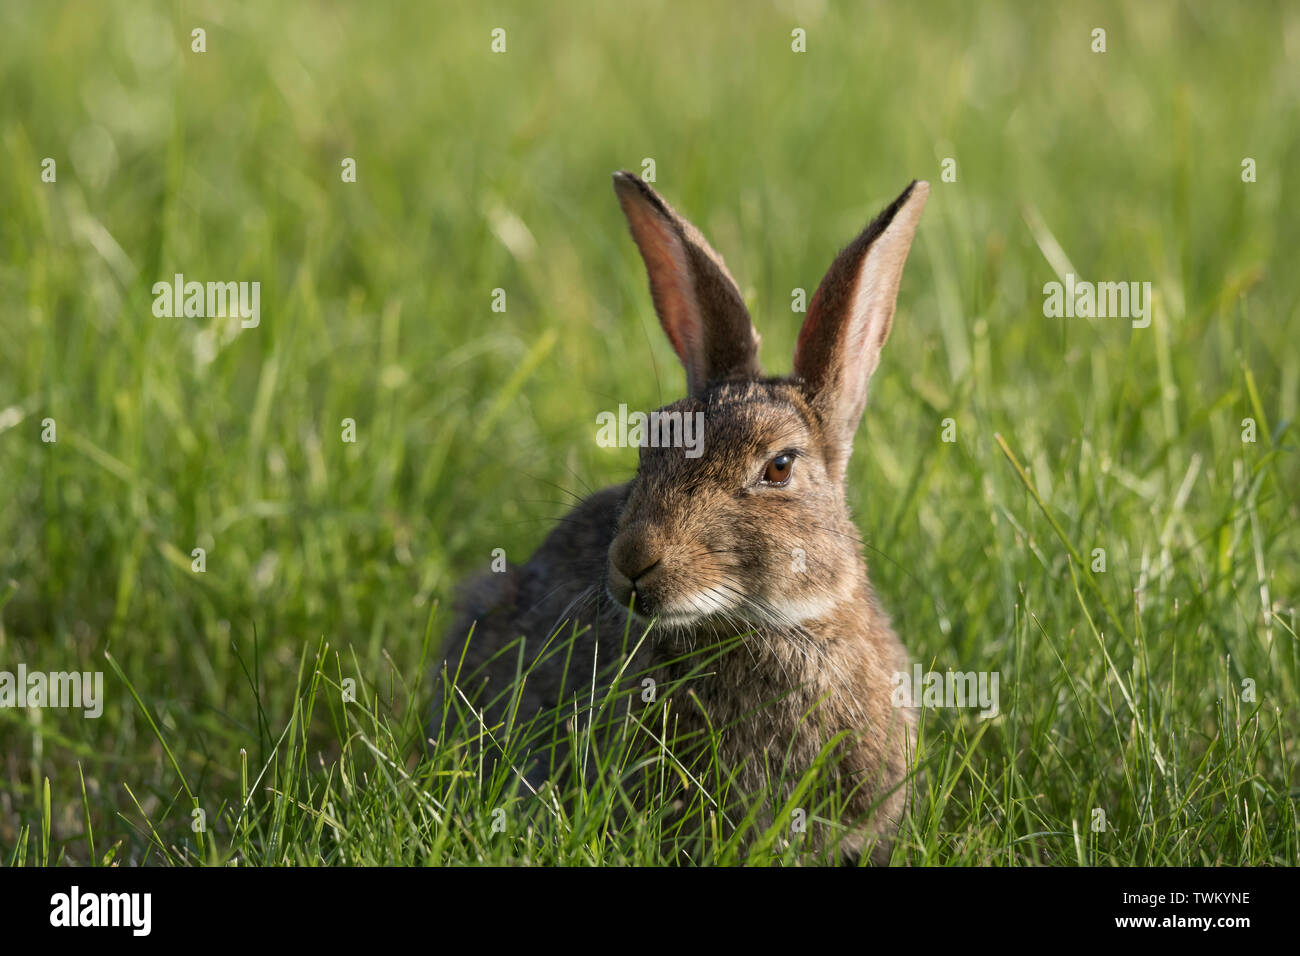 Detailed, close-up view of a wild rabbit (Oryctolagus cuniculus) isolated outdoors in a UK meadow on a summer afternoon in the sun. - Stock Image